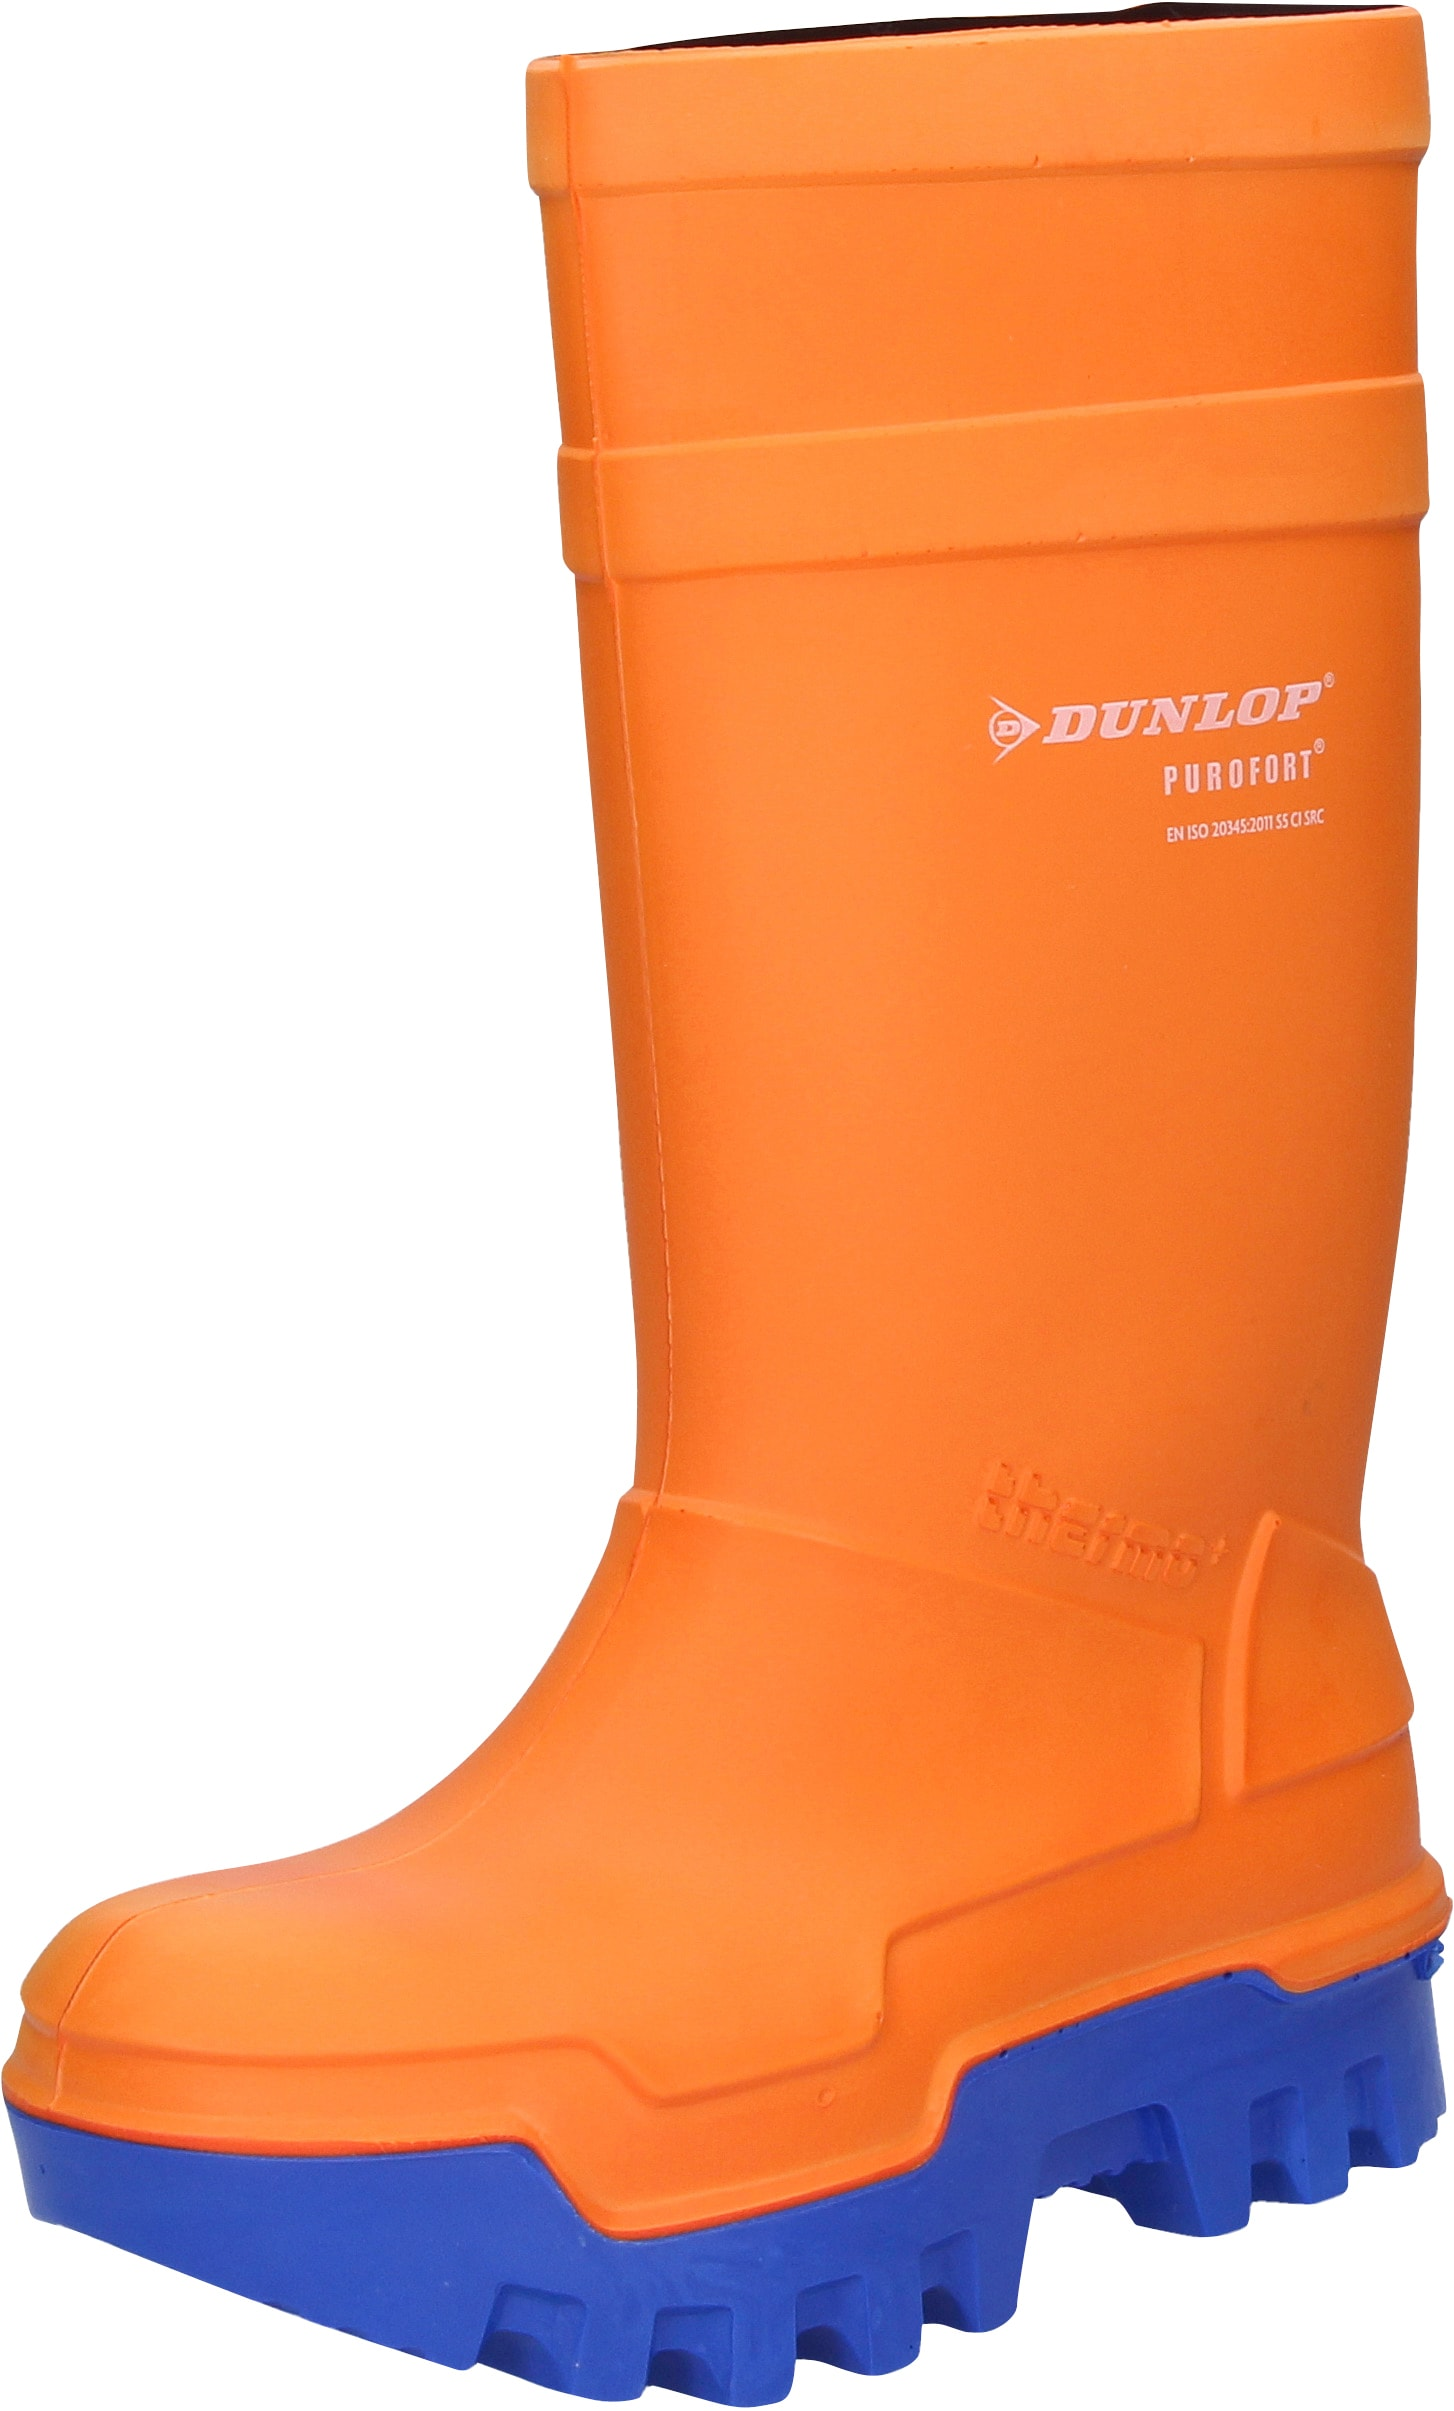 dunlop_workwear - Dunlop Gummistiefel Thermo-Plus